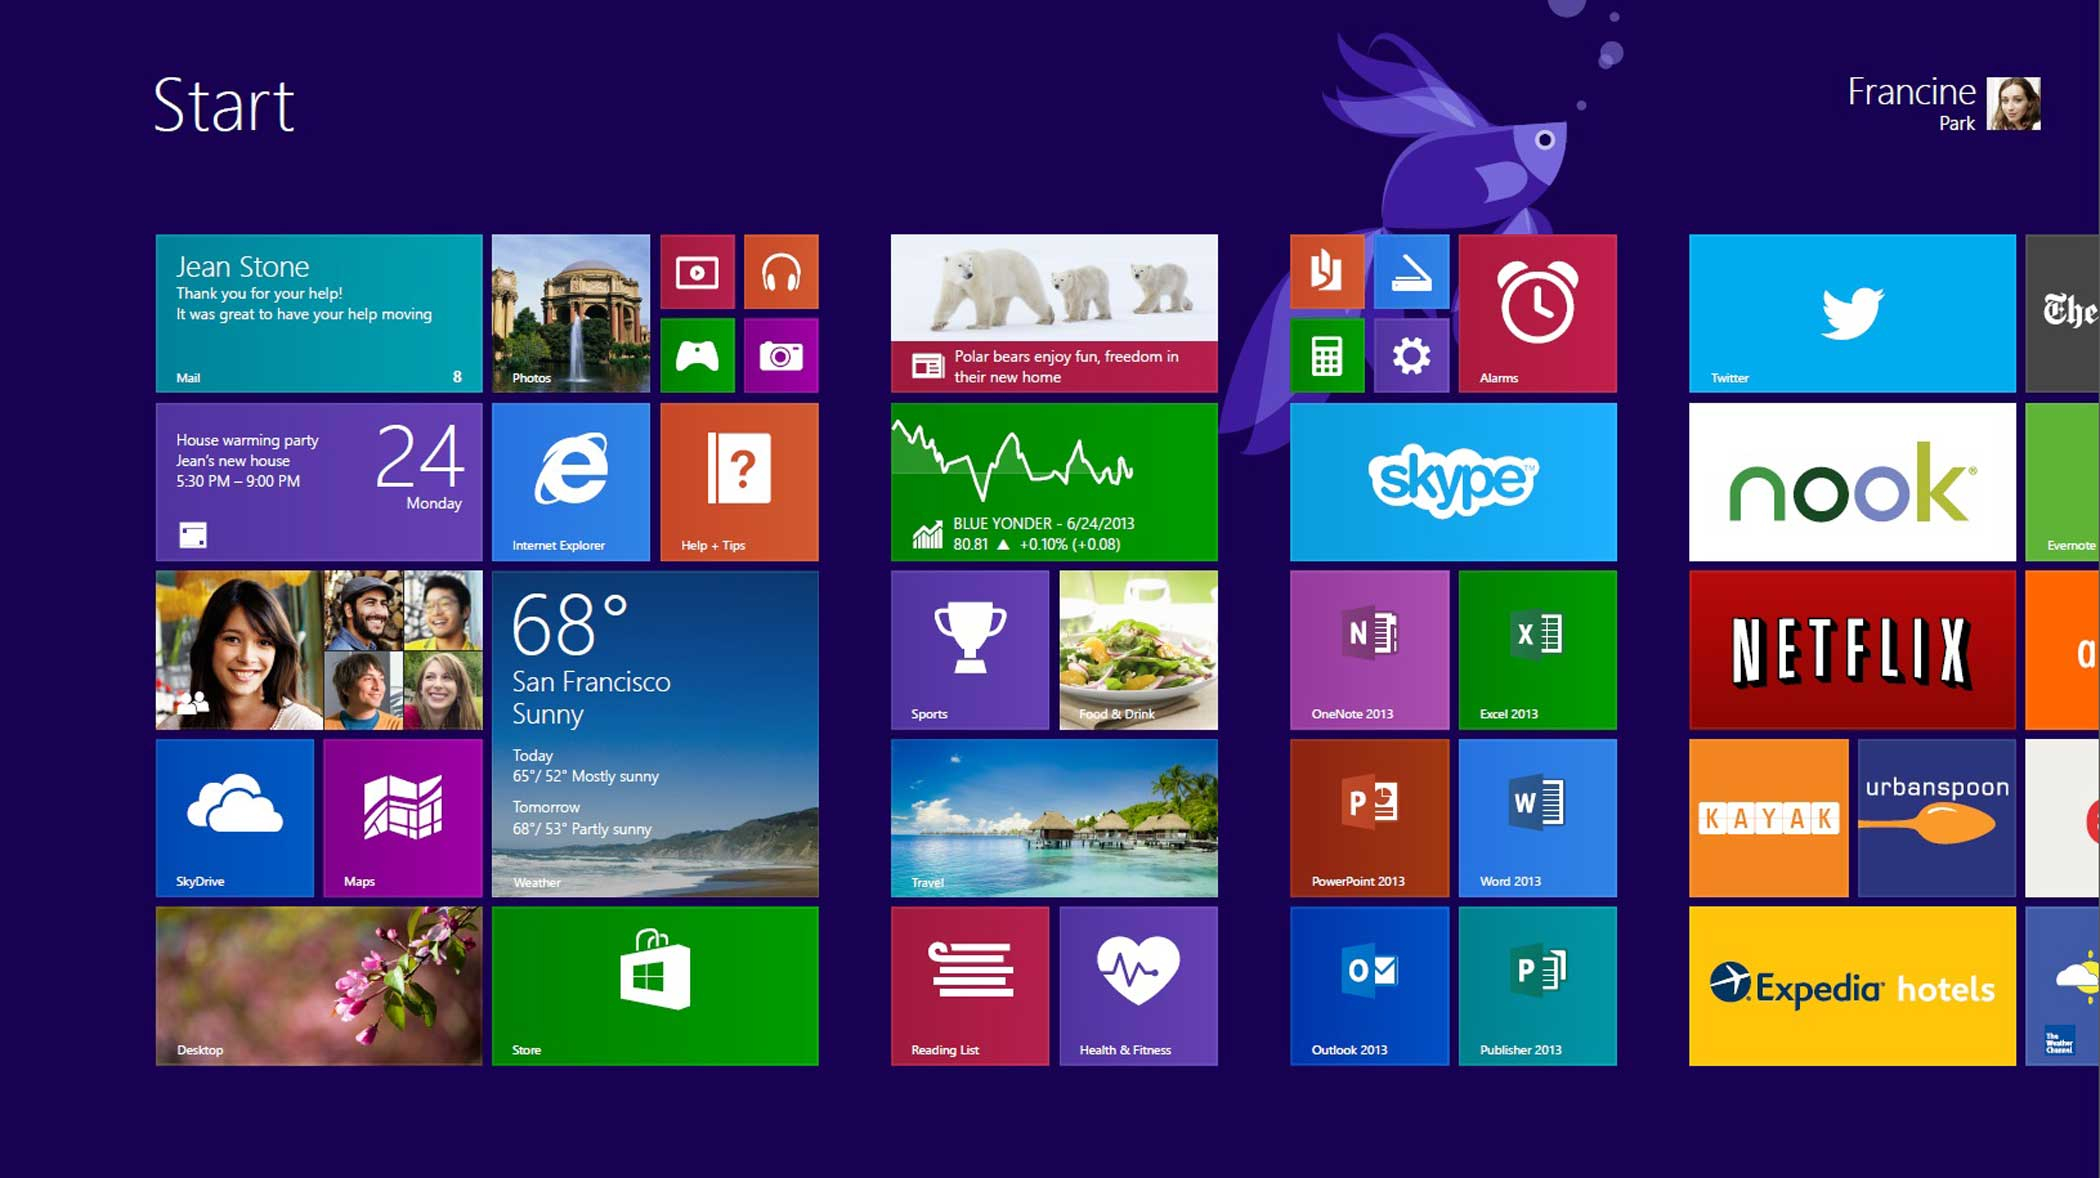 <strong>Windows 8.1</strong> released on 17, 2013, attempts to bridge the chasm gap between touch and PC interfaces, offering users their choice of Start screens. By now, tech pundits have a theory: every release of Windows alternates between hits and misses, setting expectations high for the next version, Windows 10.